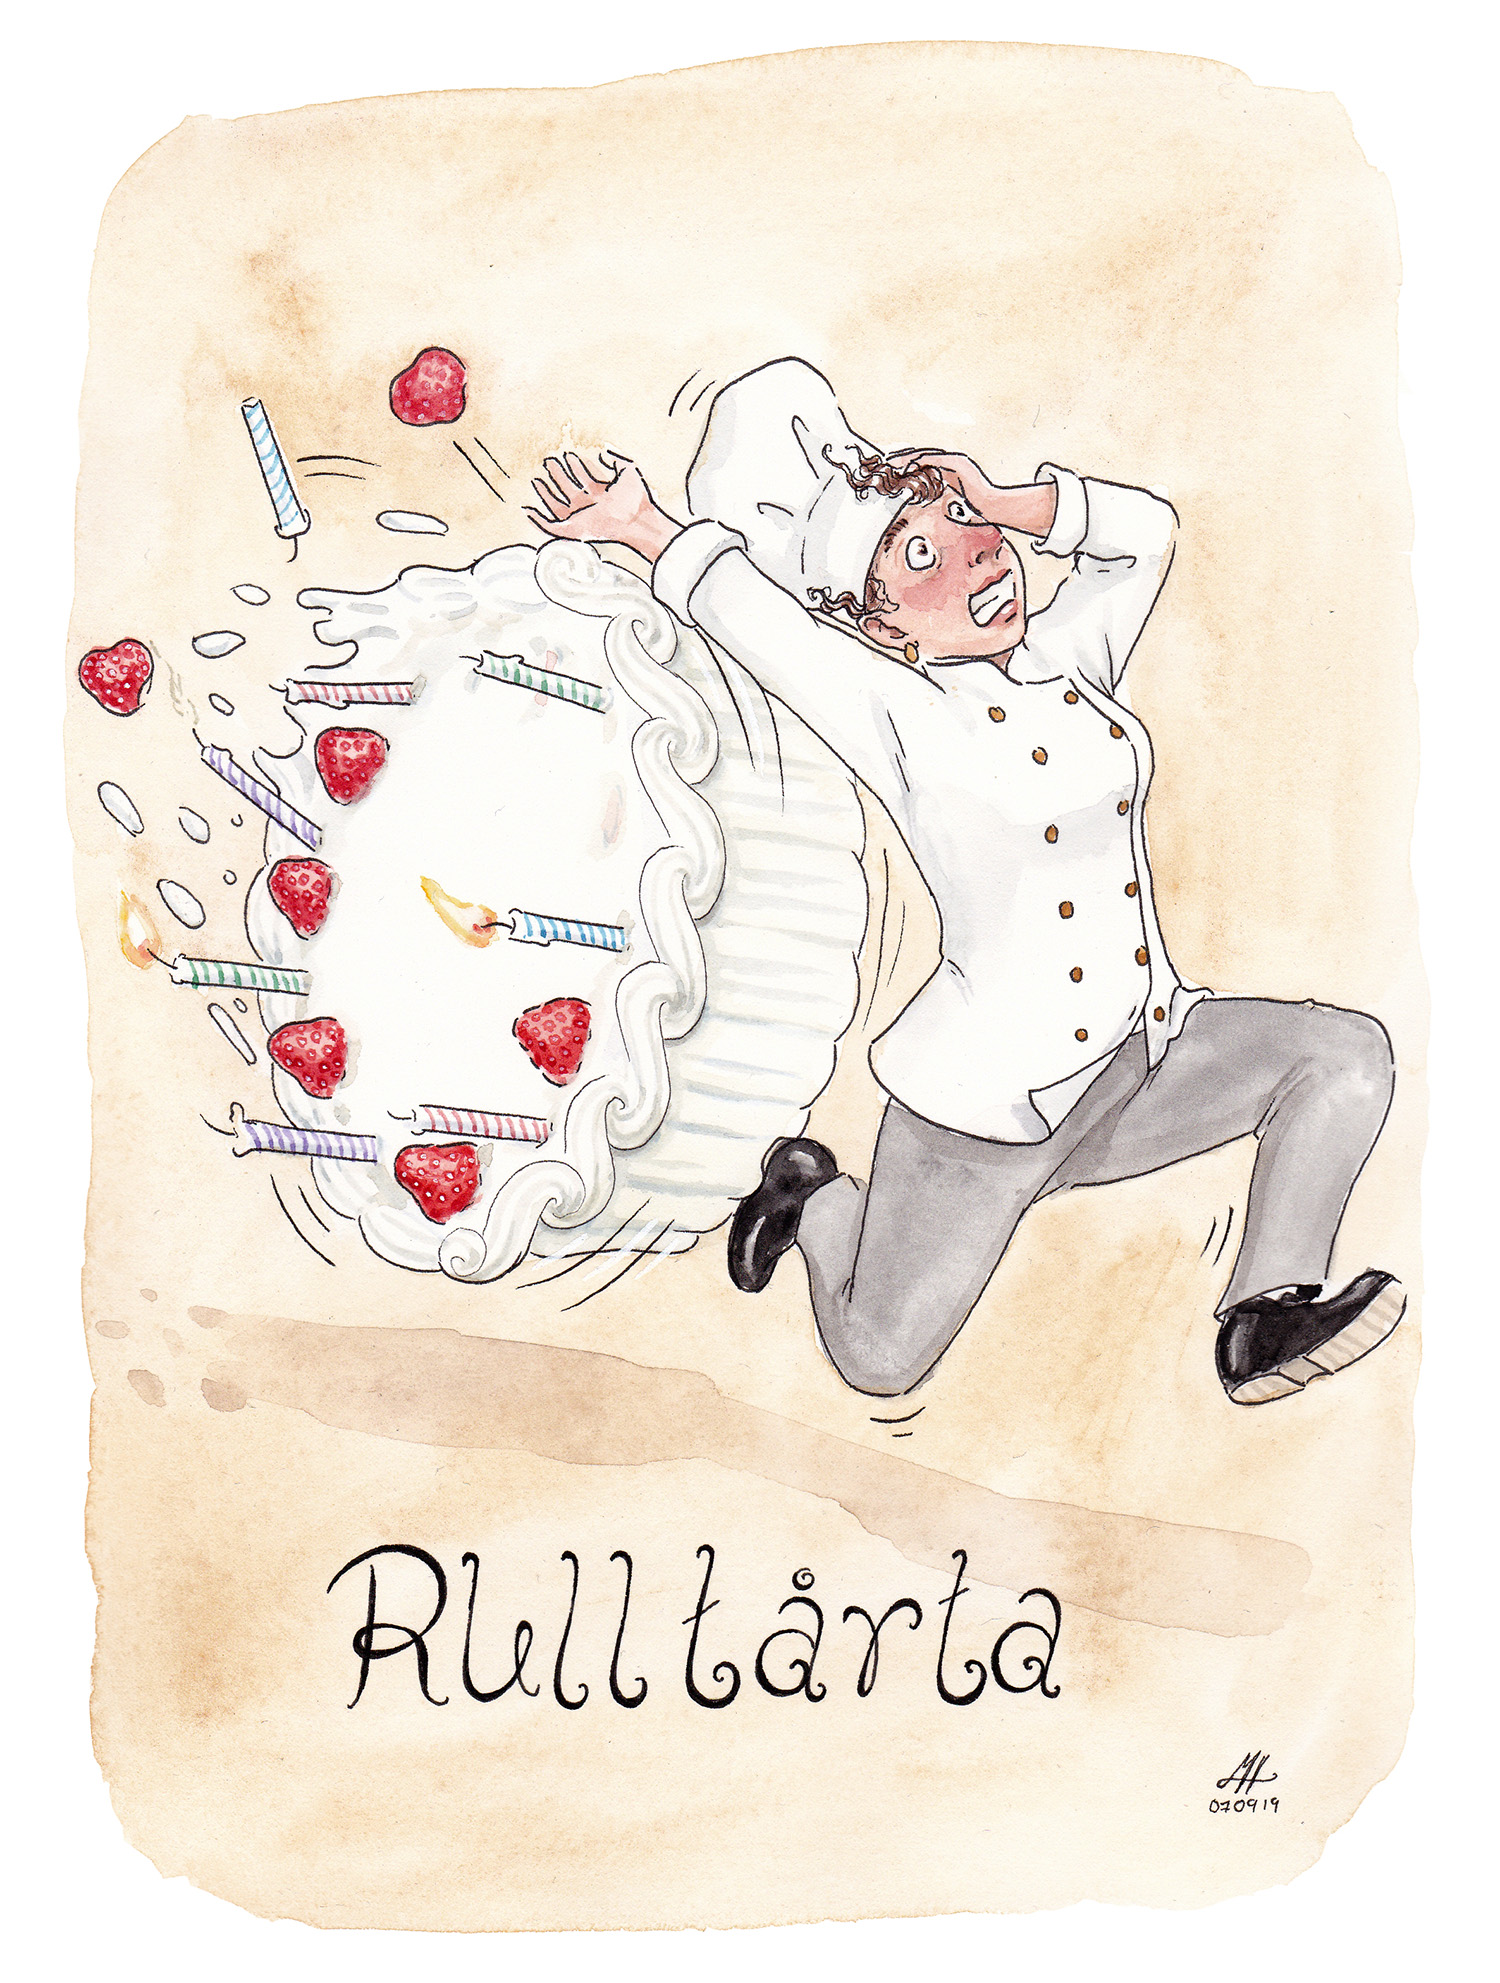 rulltårta illustration ordvits